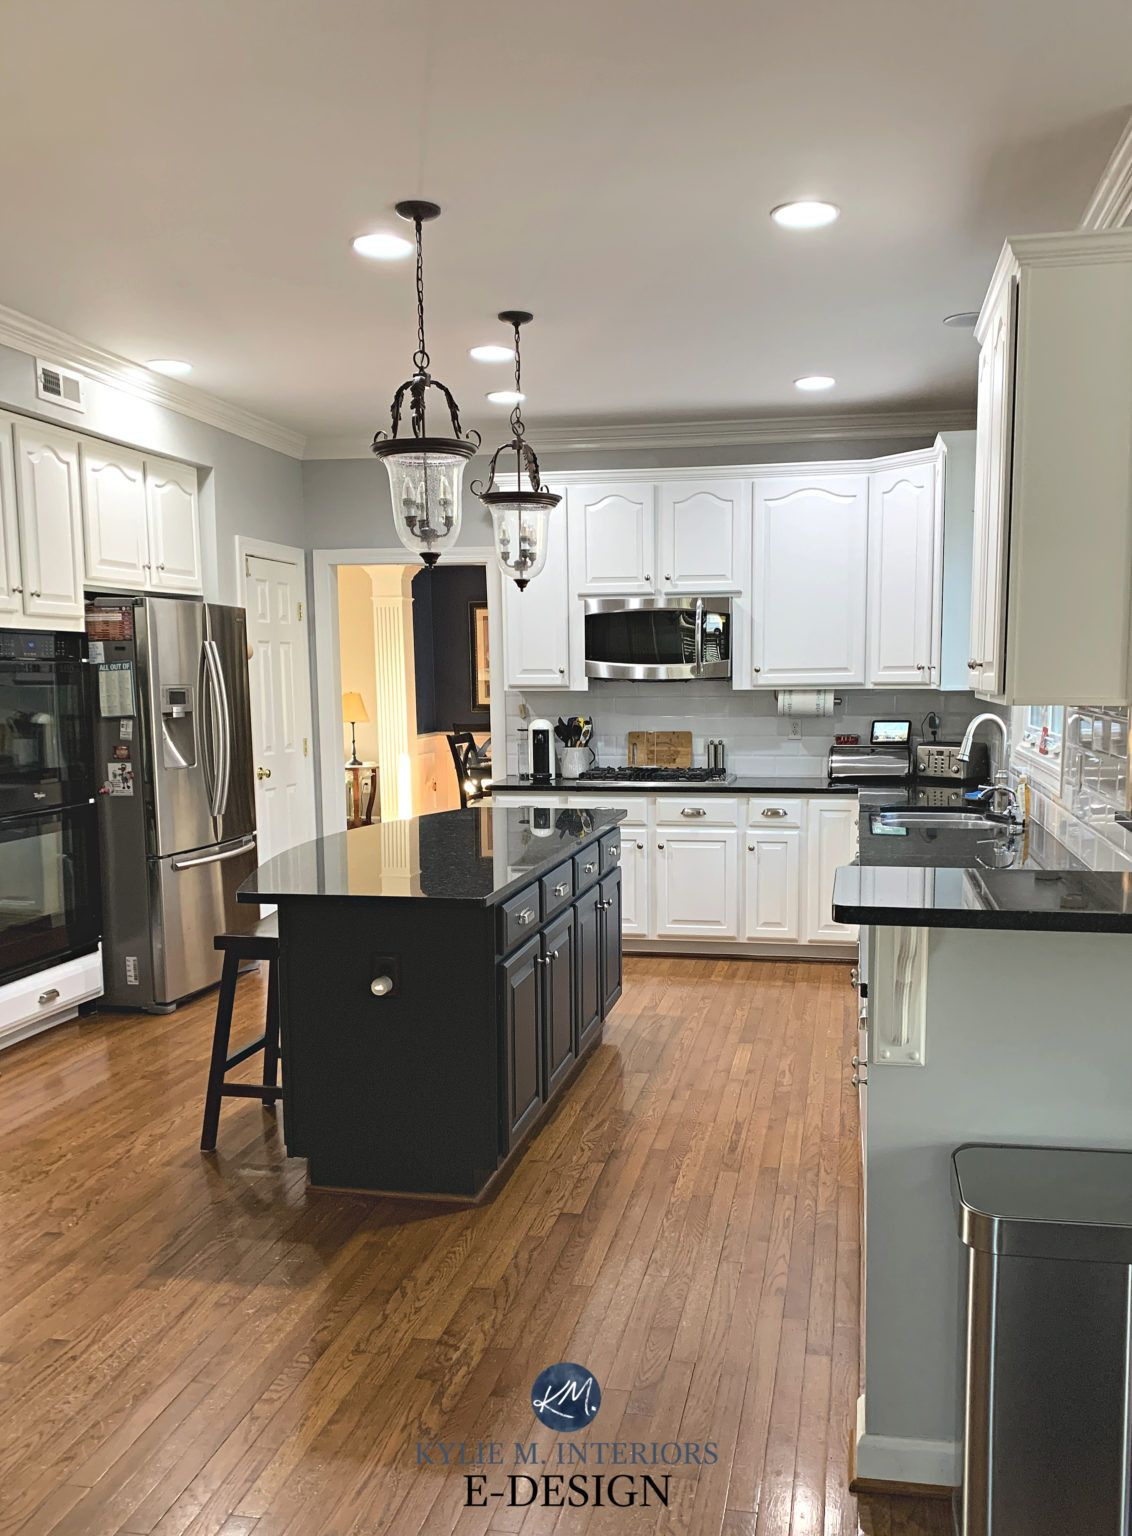 4 Ideas How To Update Oak Or Wood Kitchen Cabinets In 2020 Wood Kitchen Cabinets Wood Kitchen Maple Cabinets